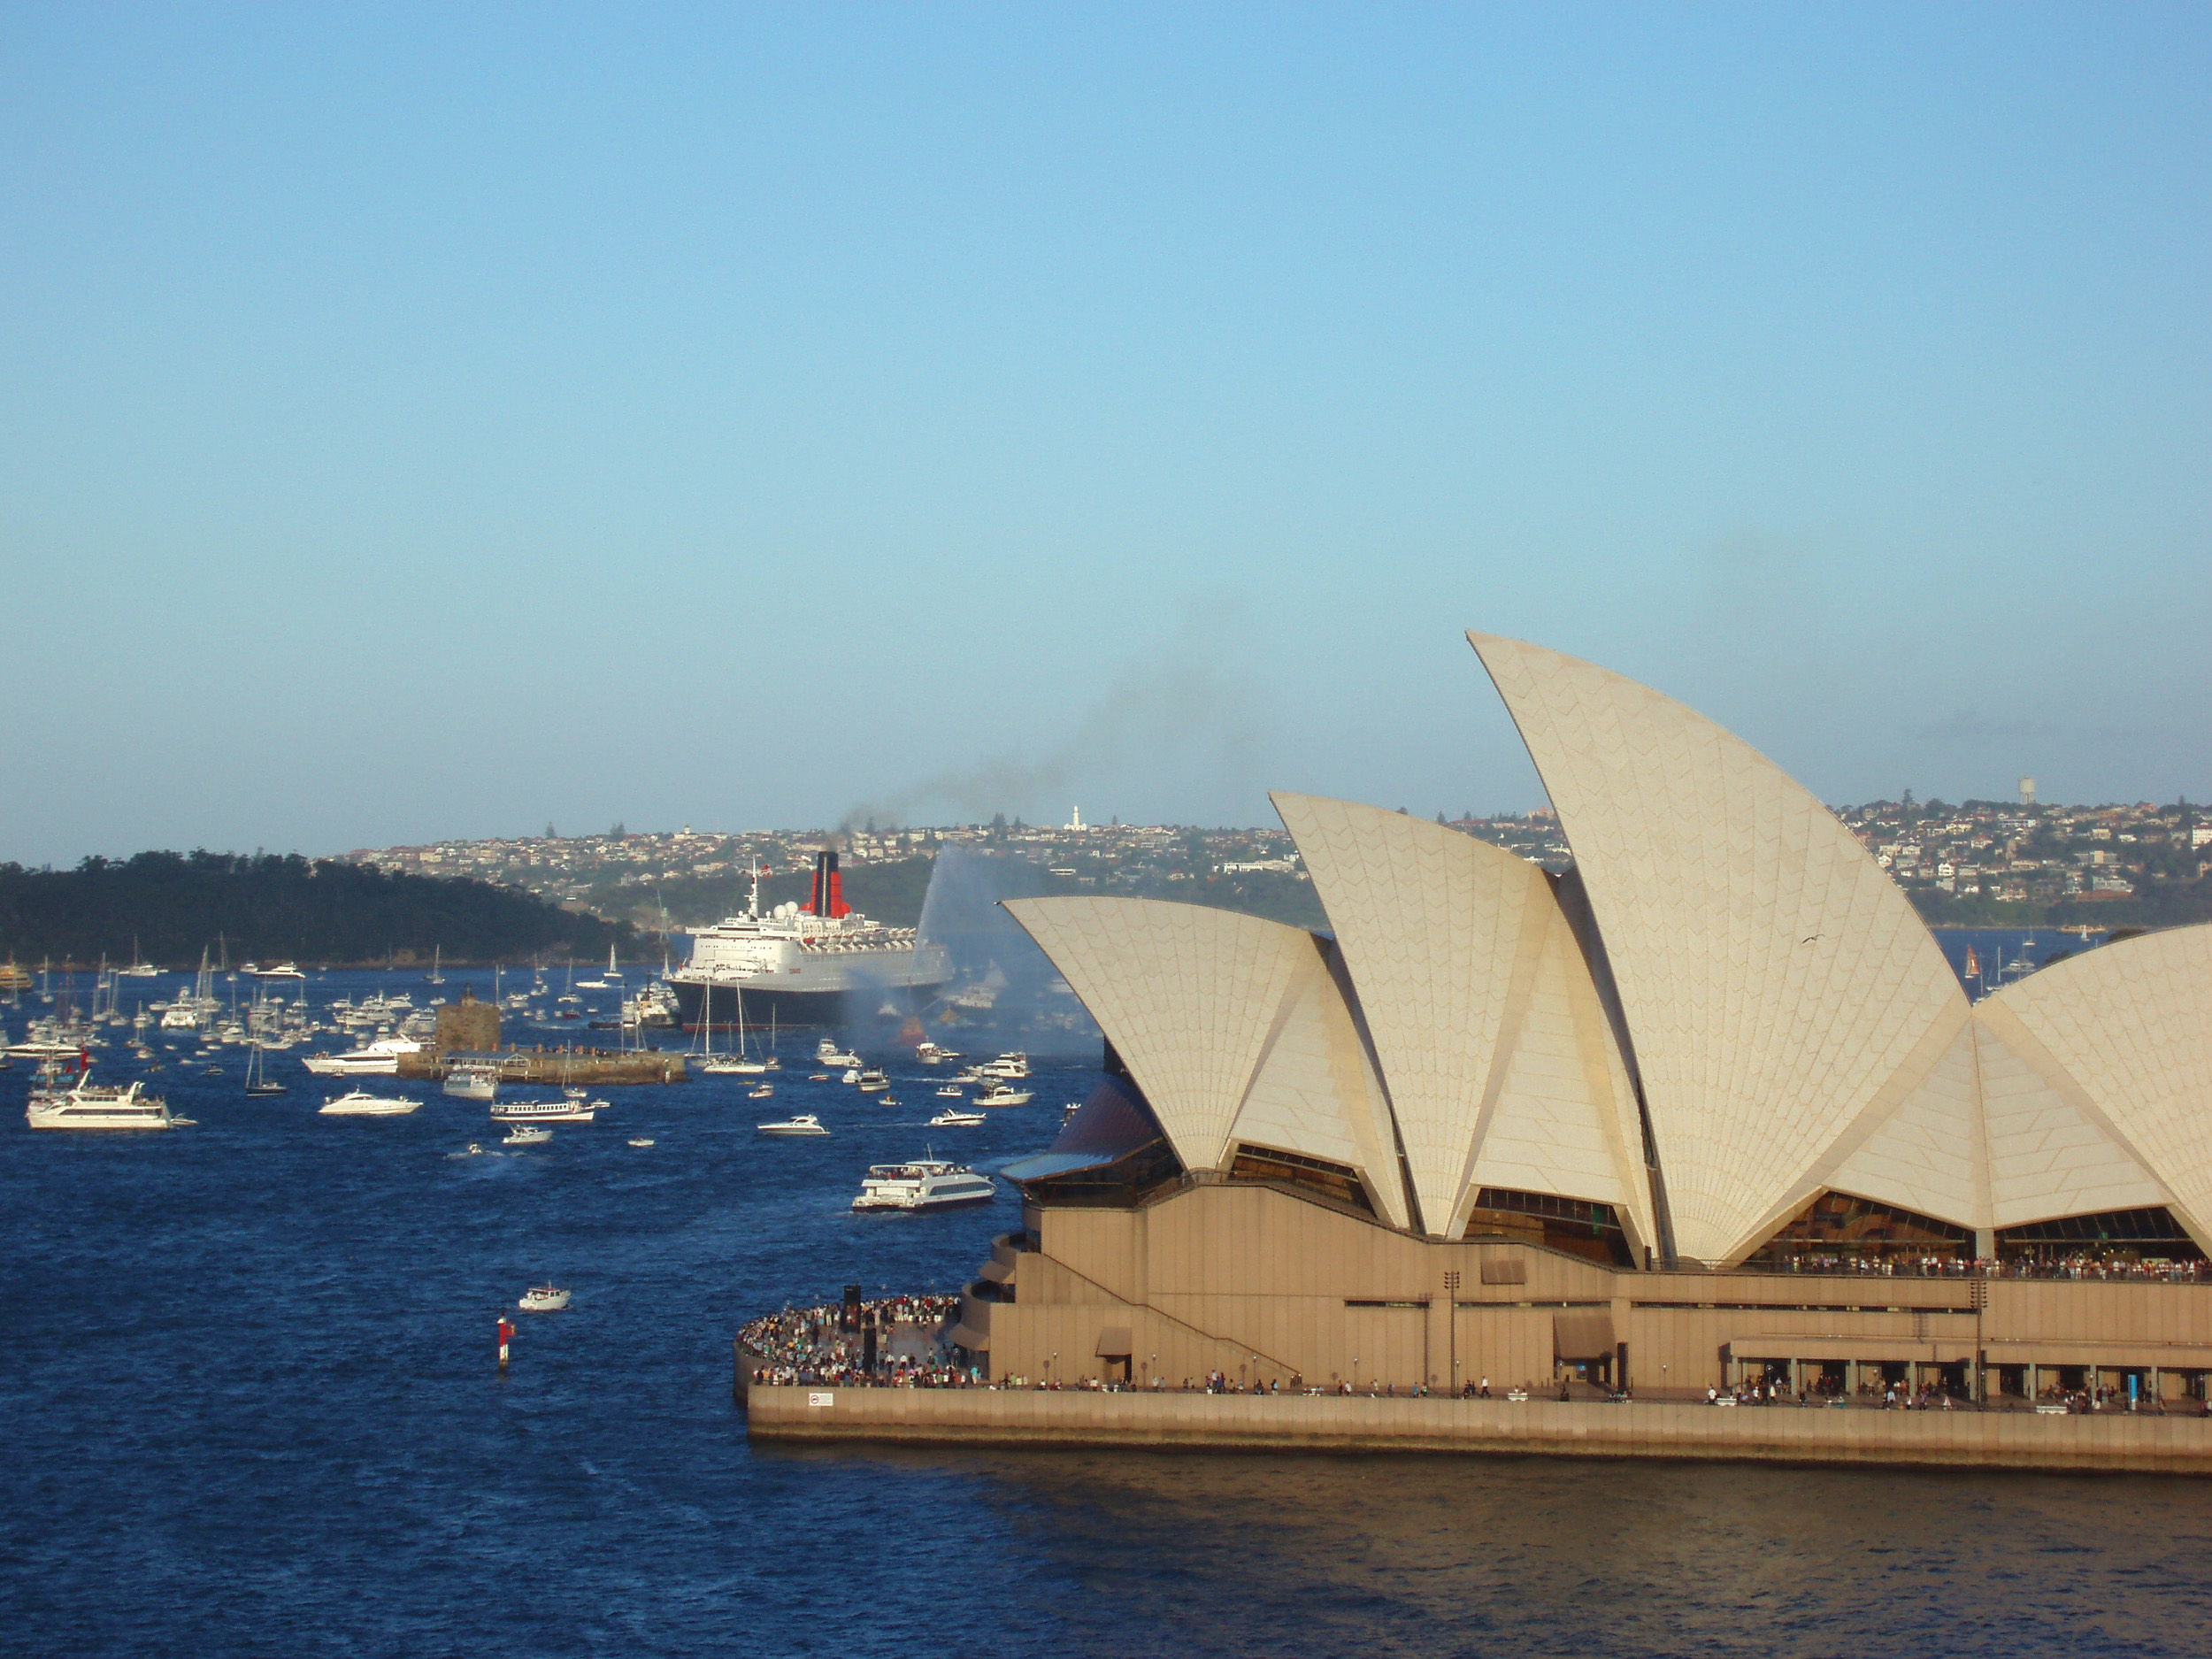 iconic sydney landmark and symbol of australia with the QEII arriving in sydney harbour to the rear